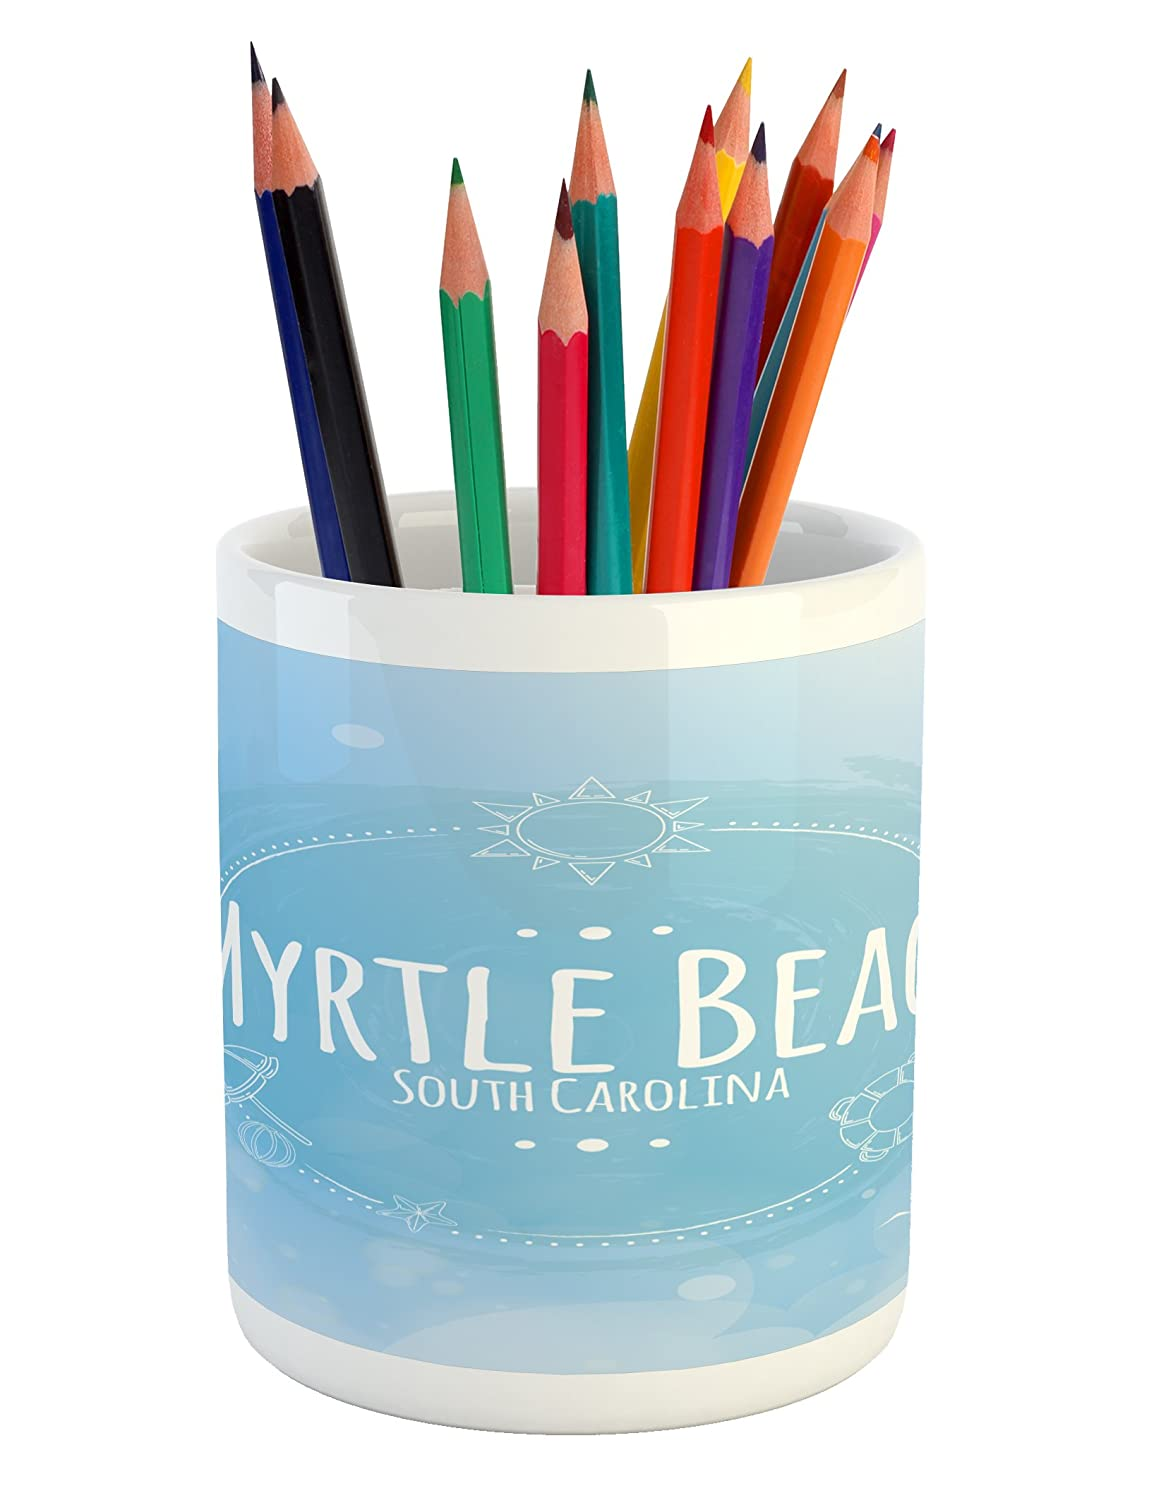 Lunarable Myrtle Beach Pencil Pen Holder, South Carolina Beach Lettering with Sun Umbrella and Starfish Sketch, Printed Ceramic Pencil Pen Holder for Desk Office Accessory, Blue Baby Blue White